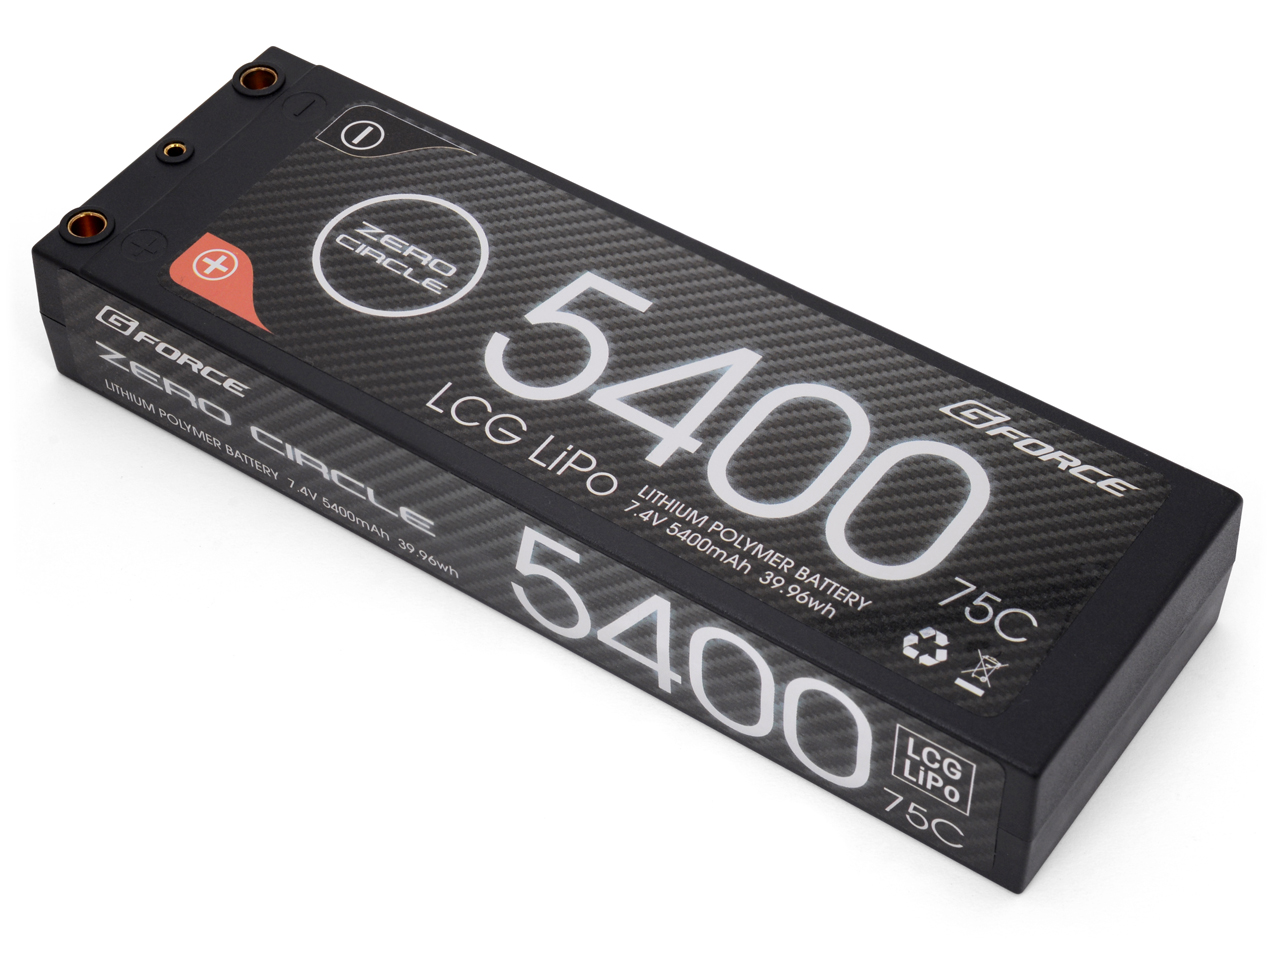 G-FORCE GE220 ZERO CIRCLE LCG 7.4V 5400mAh 75C